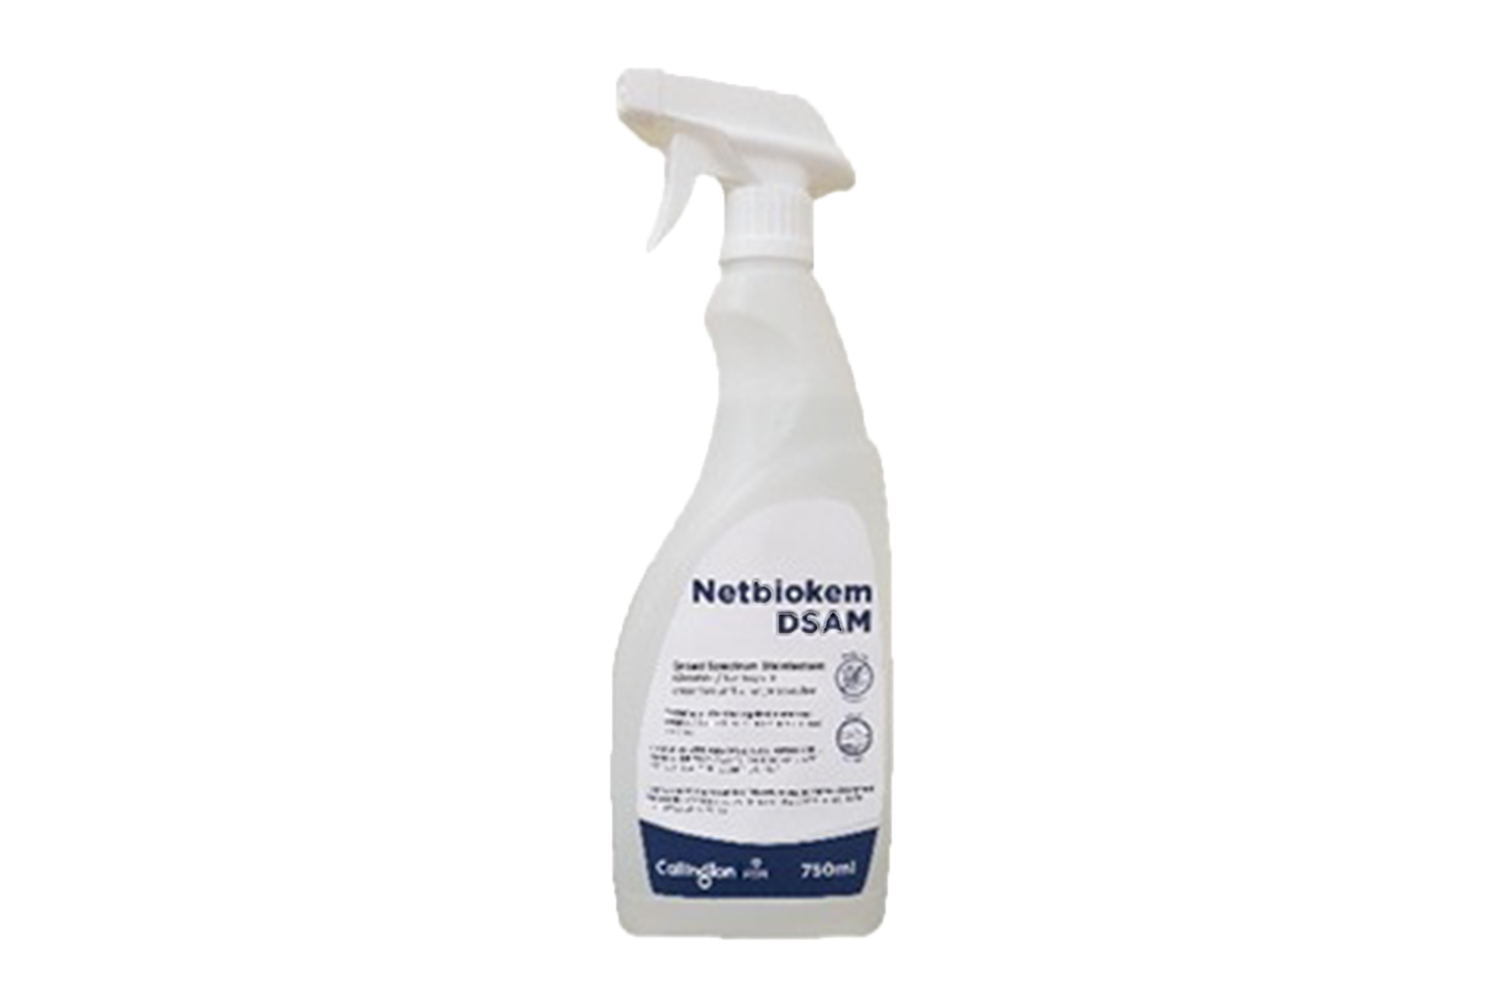 UNIVERSAL DISINFECTANT AND CLEANER